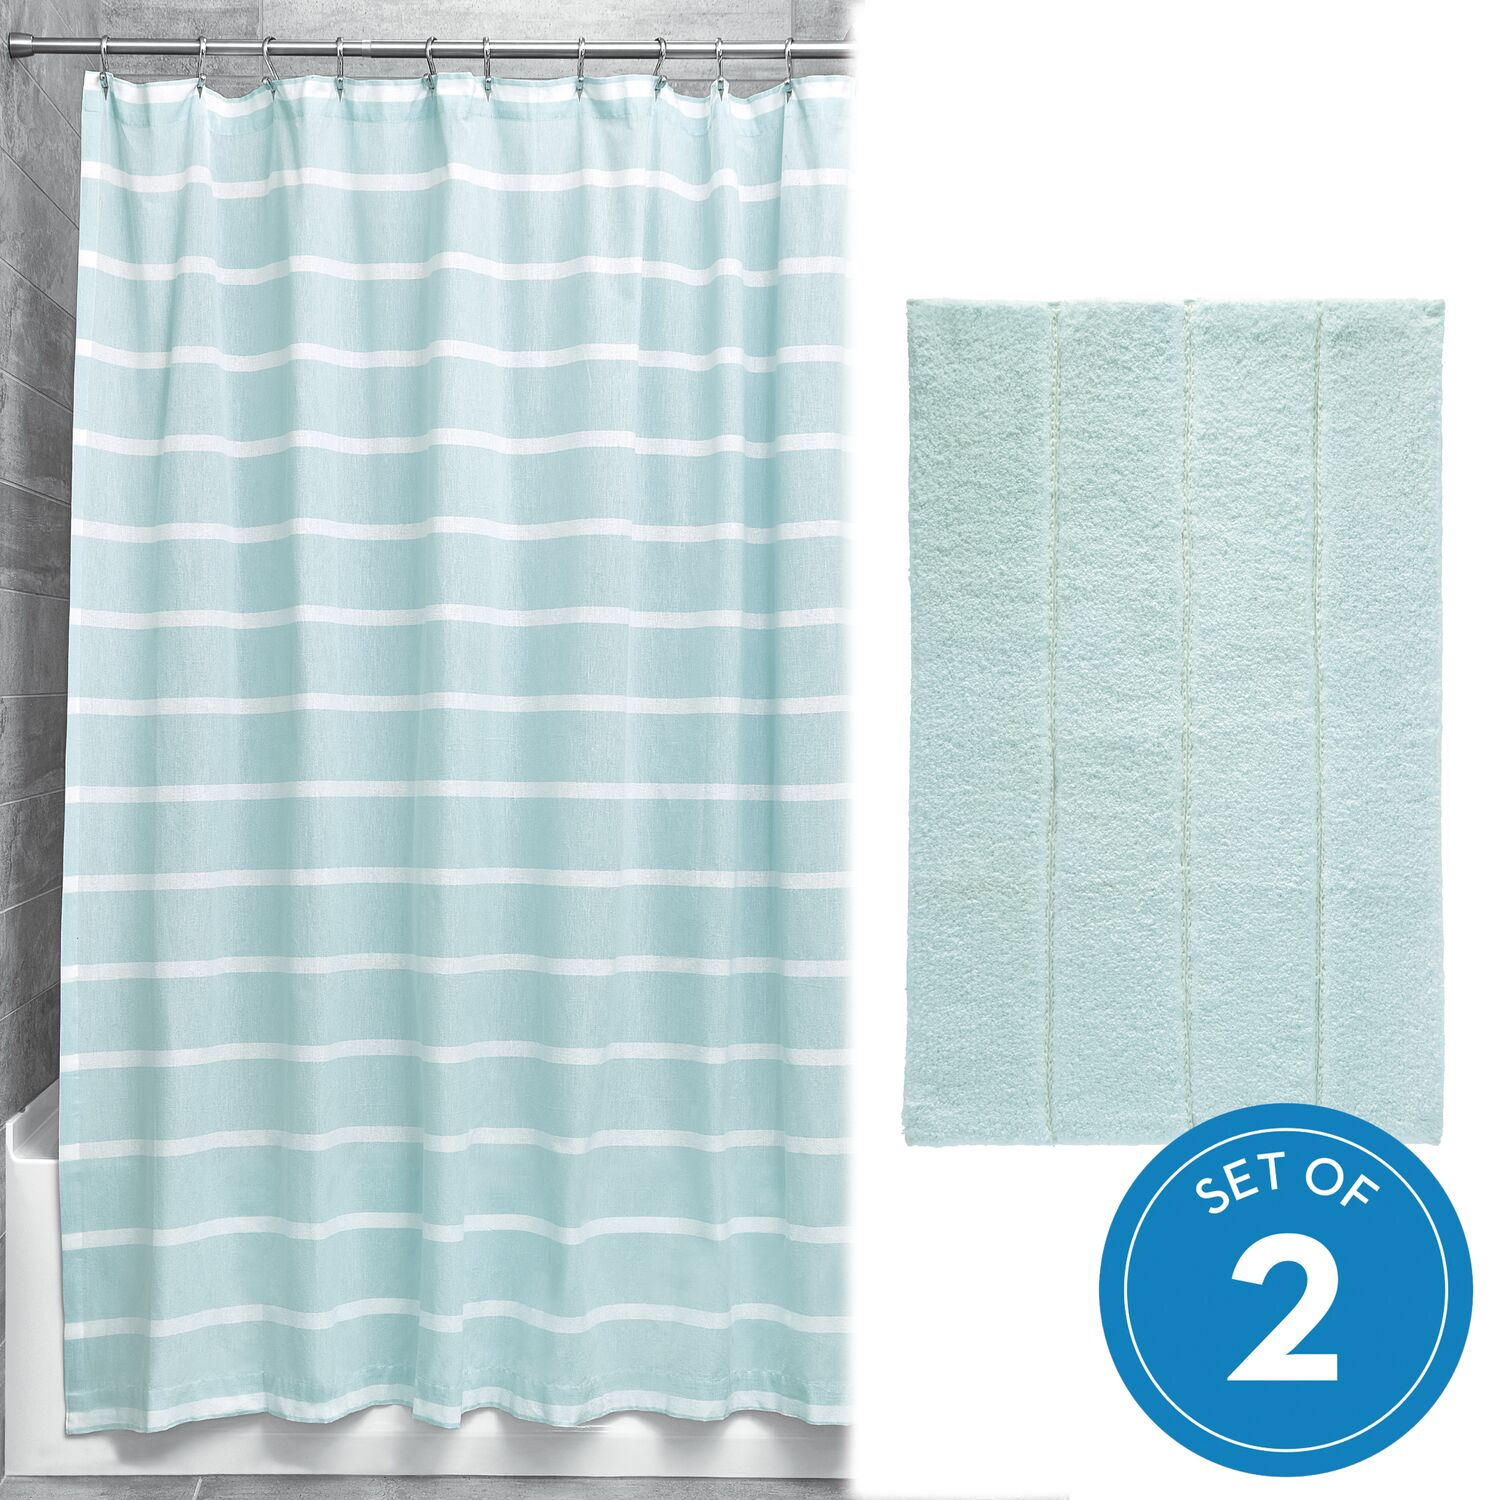 idesign thin stripe shower curtain and rug 2 piece combo set spa blue and white